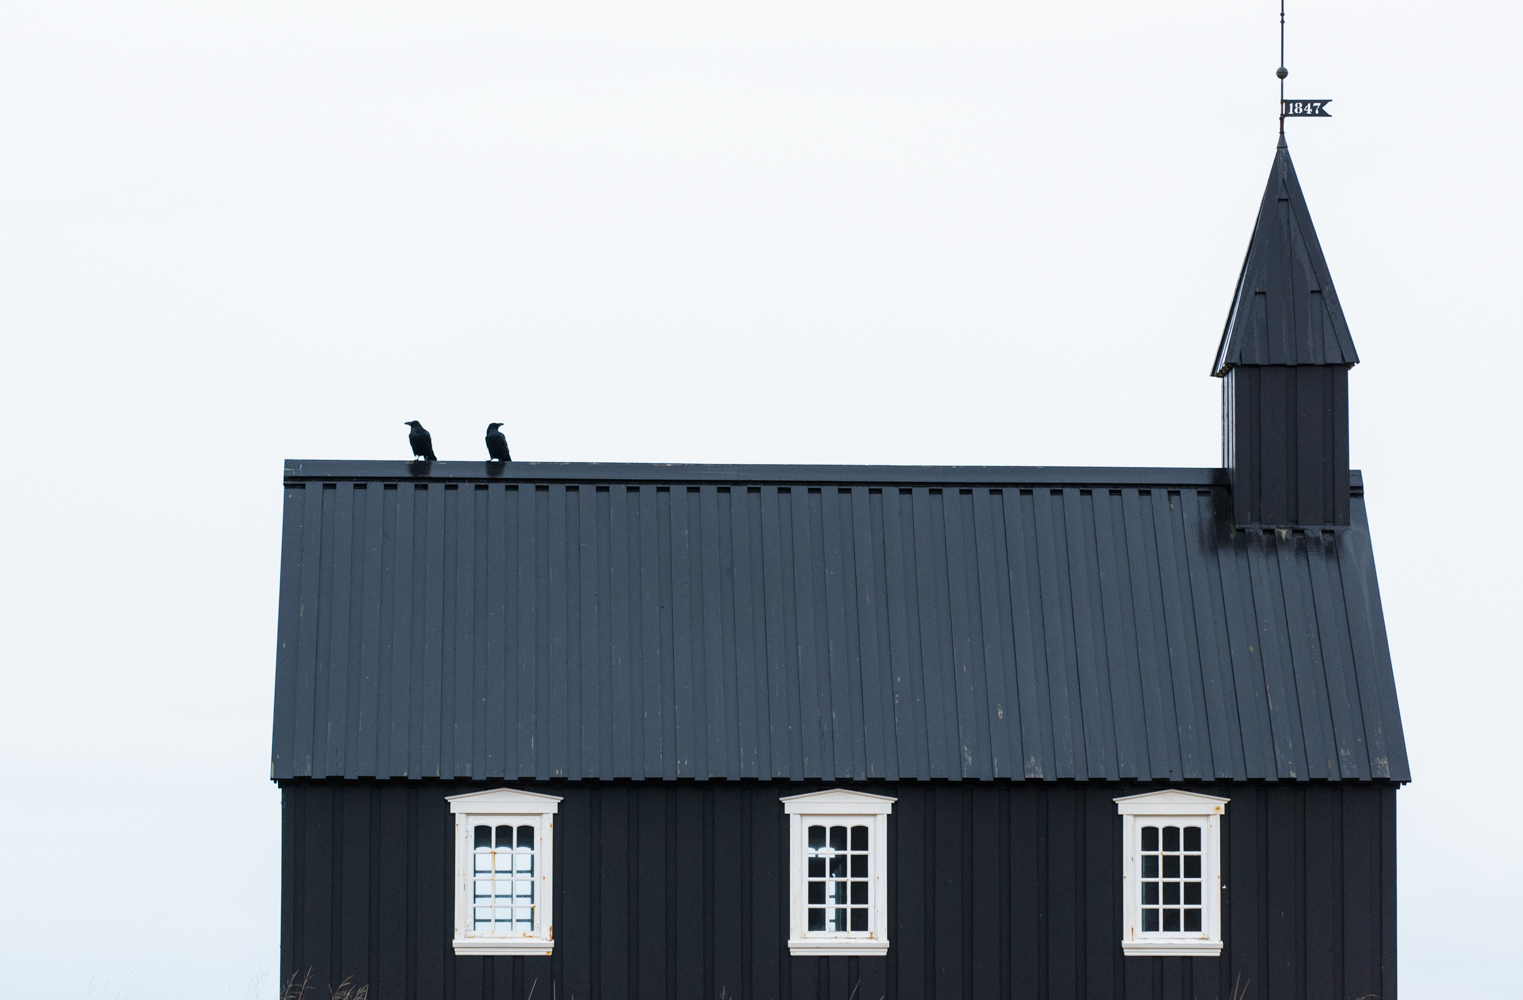 Ravens on the roof of the church at Buðir, Iceland